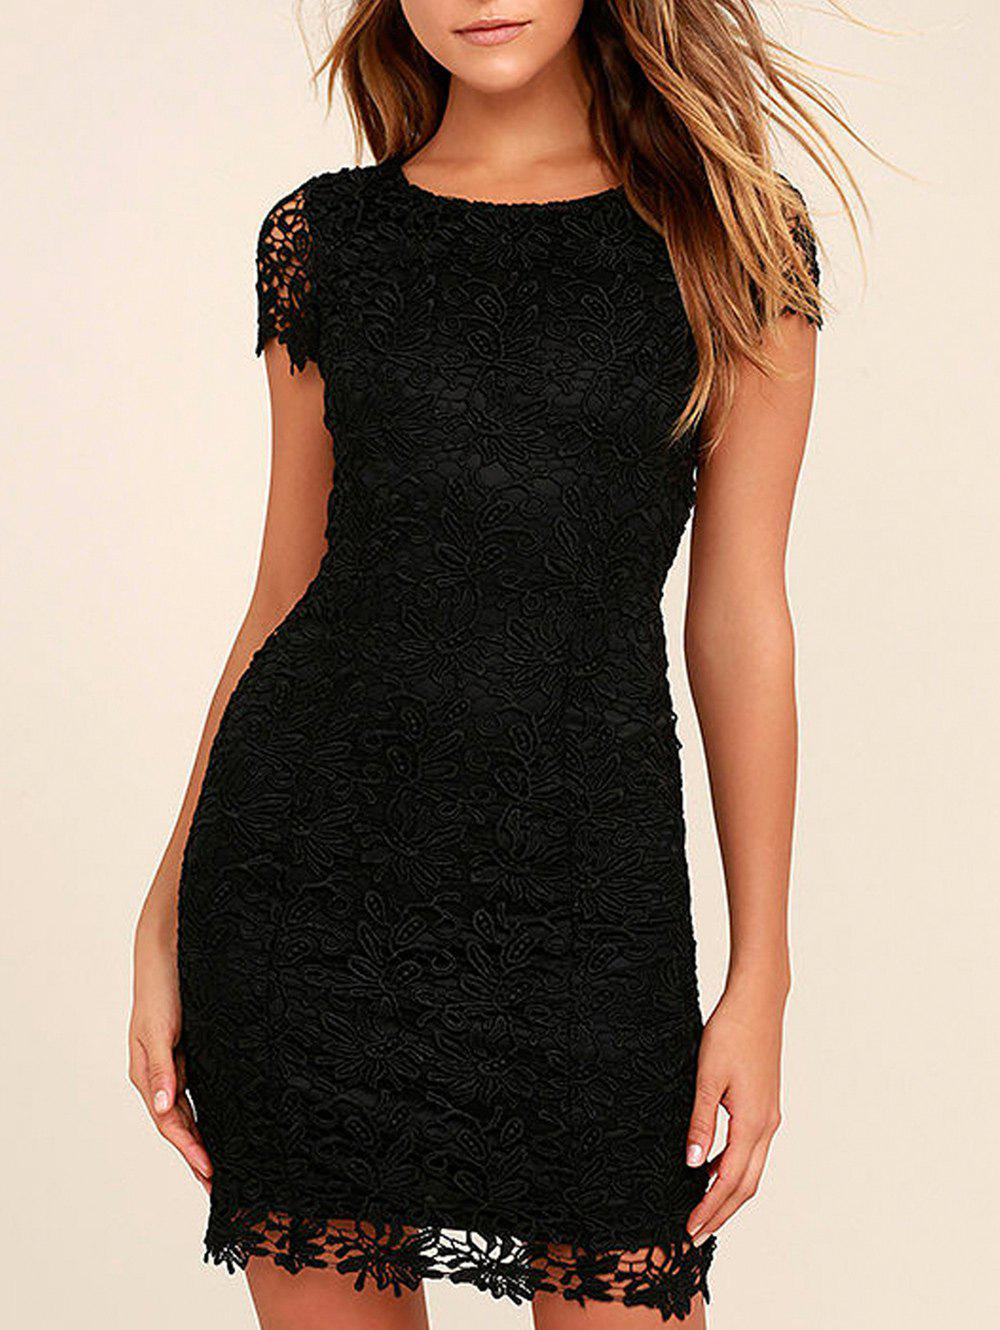 Discount Lace Back Cut Out Bodycon Dress